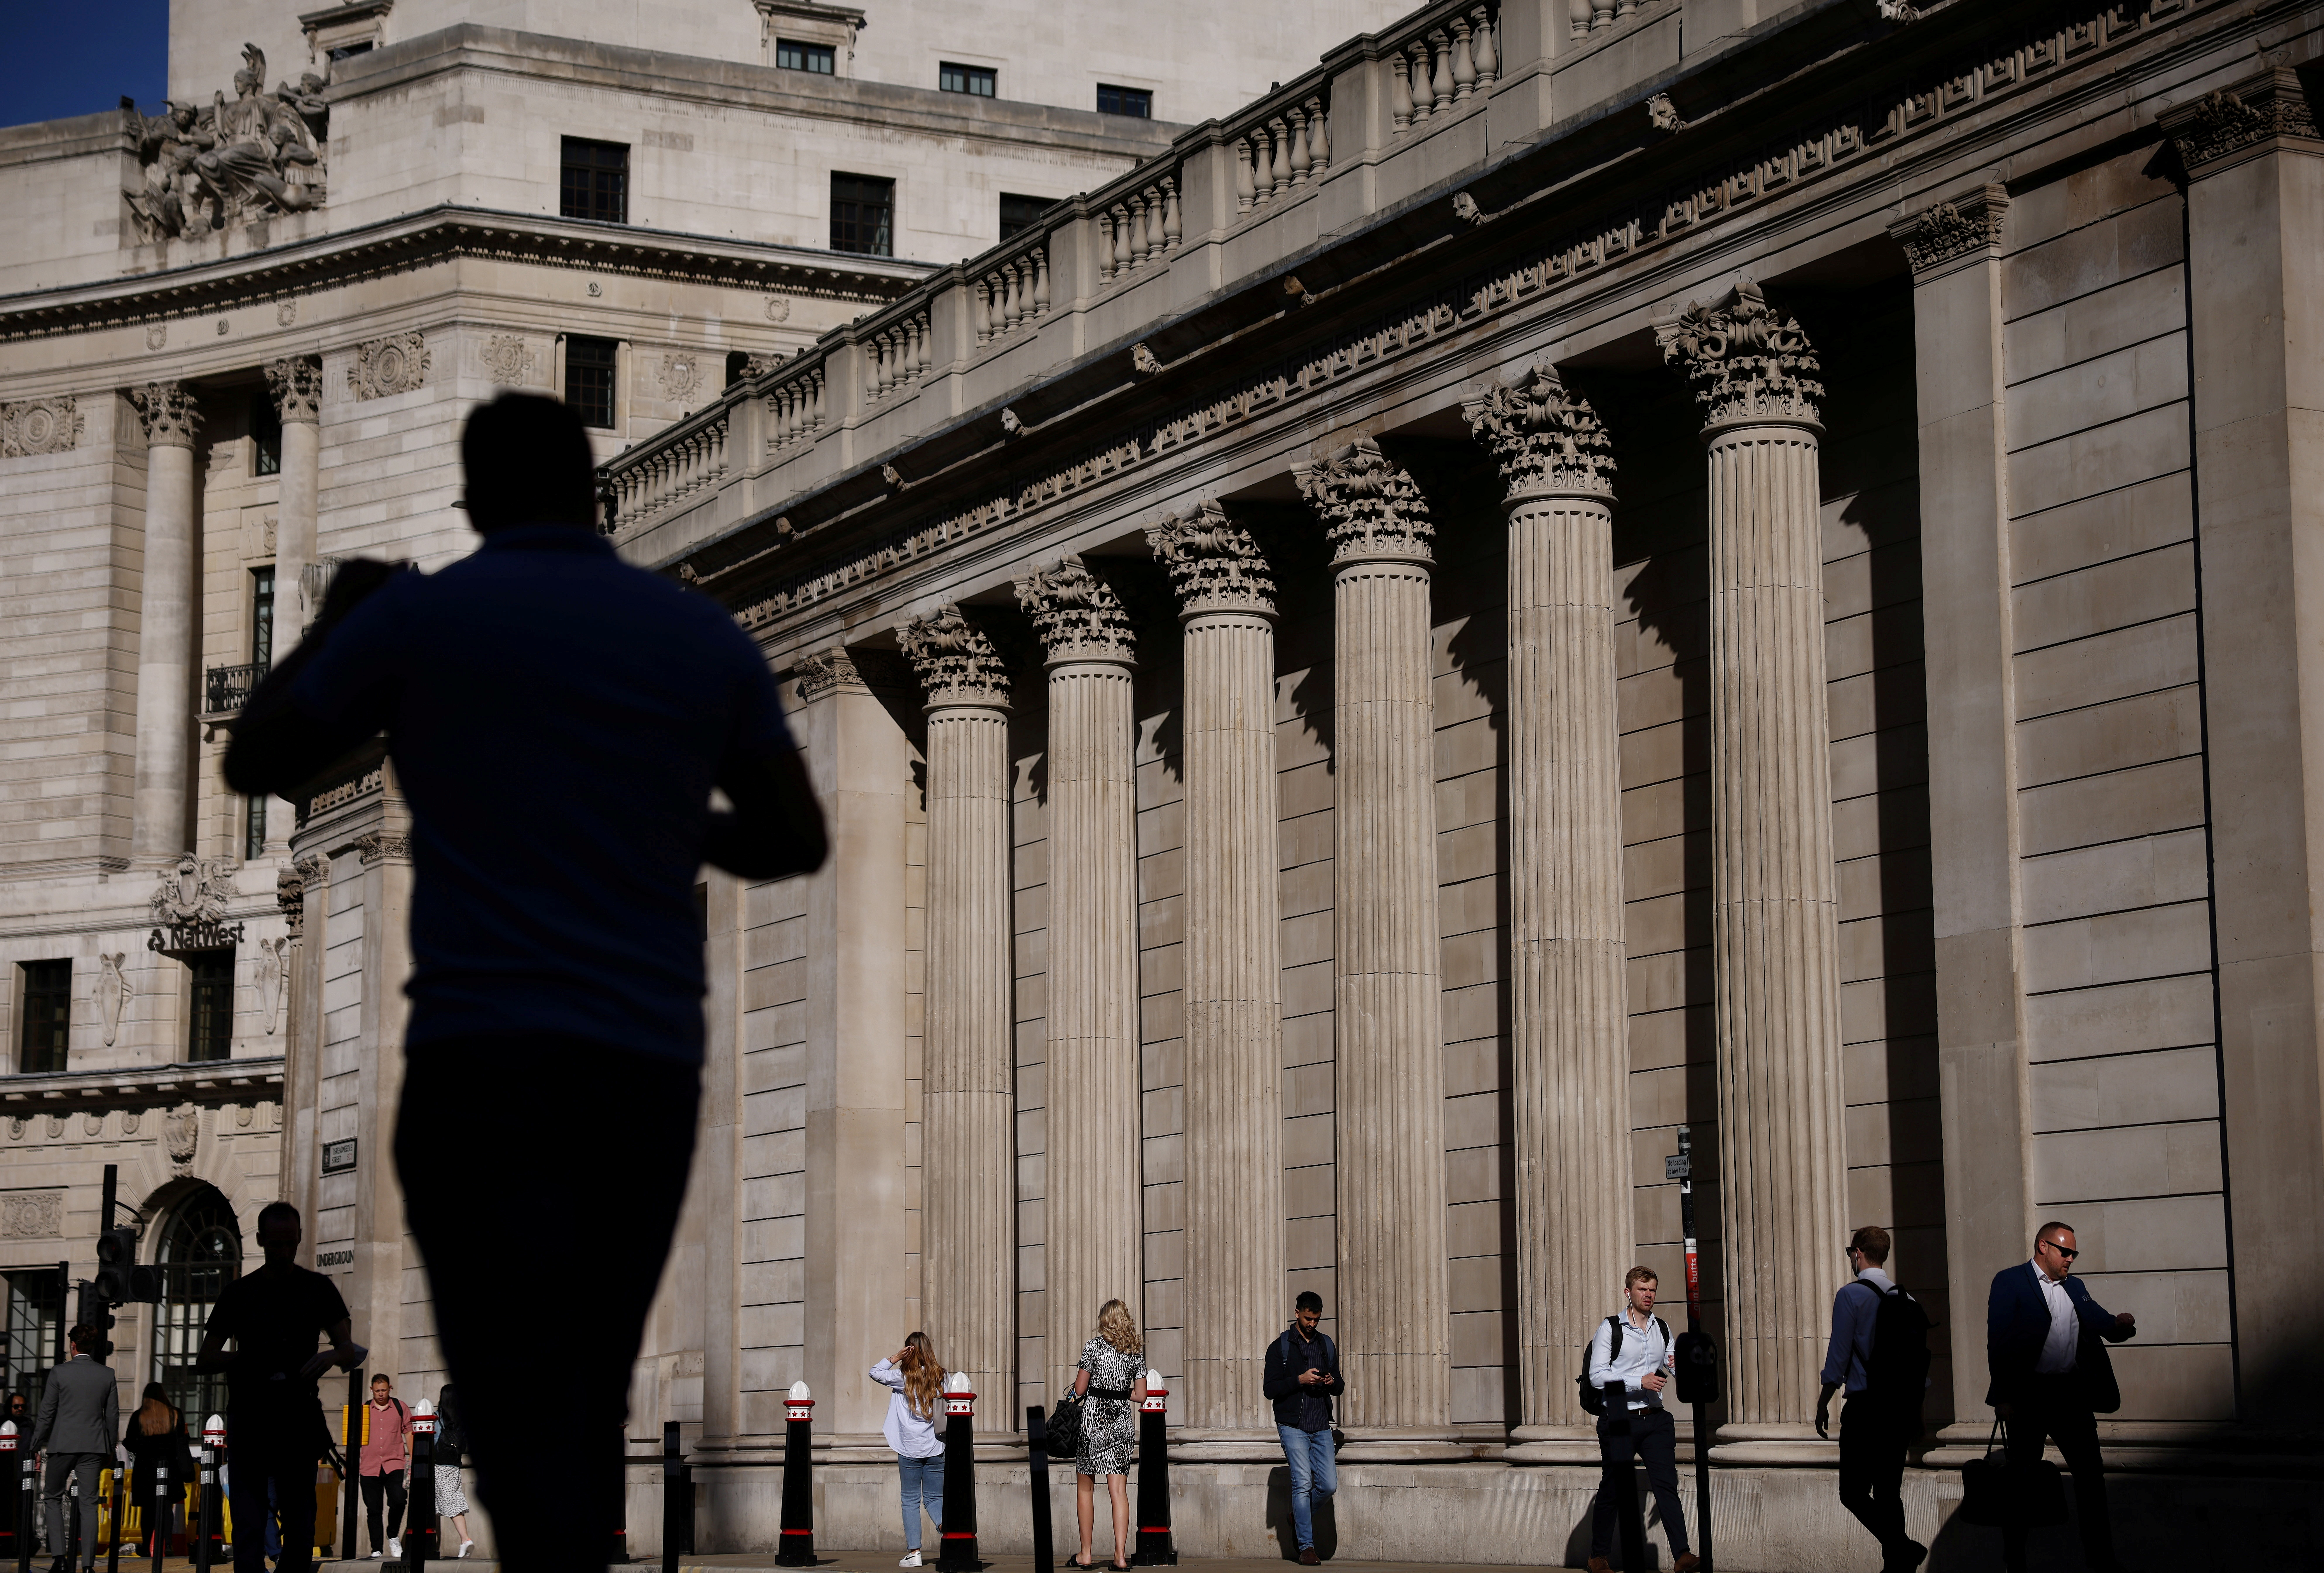 People walk past the Bank of England during morning rush hour, amid the coronavirus disease (COVID-19) pandemic in London, Britain, July 29, 2021. REUTERS/Henry Nicholls/File Photo